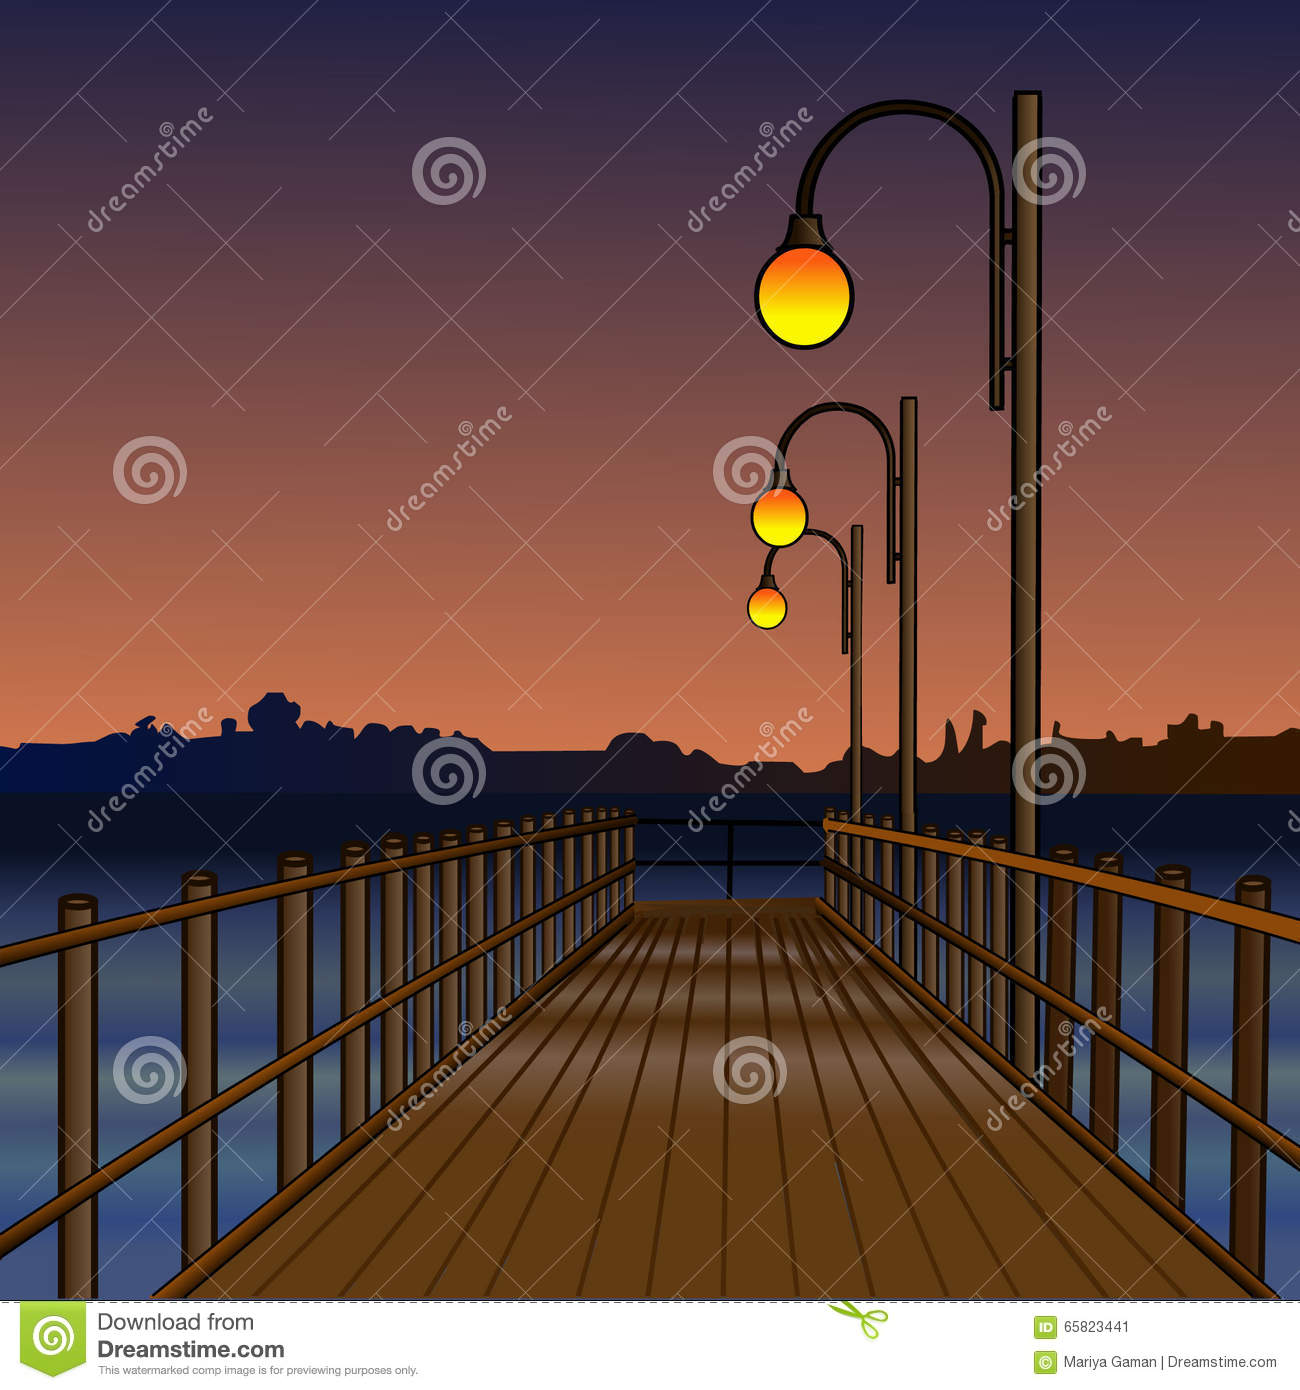 Water Lamps Pier Illuminated By Light Lamps Night River Reflection Of Lamps